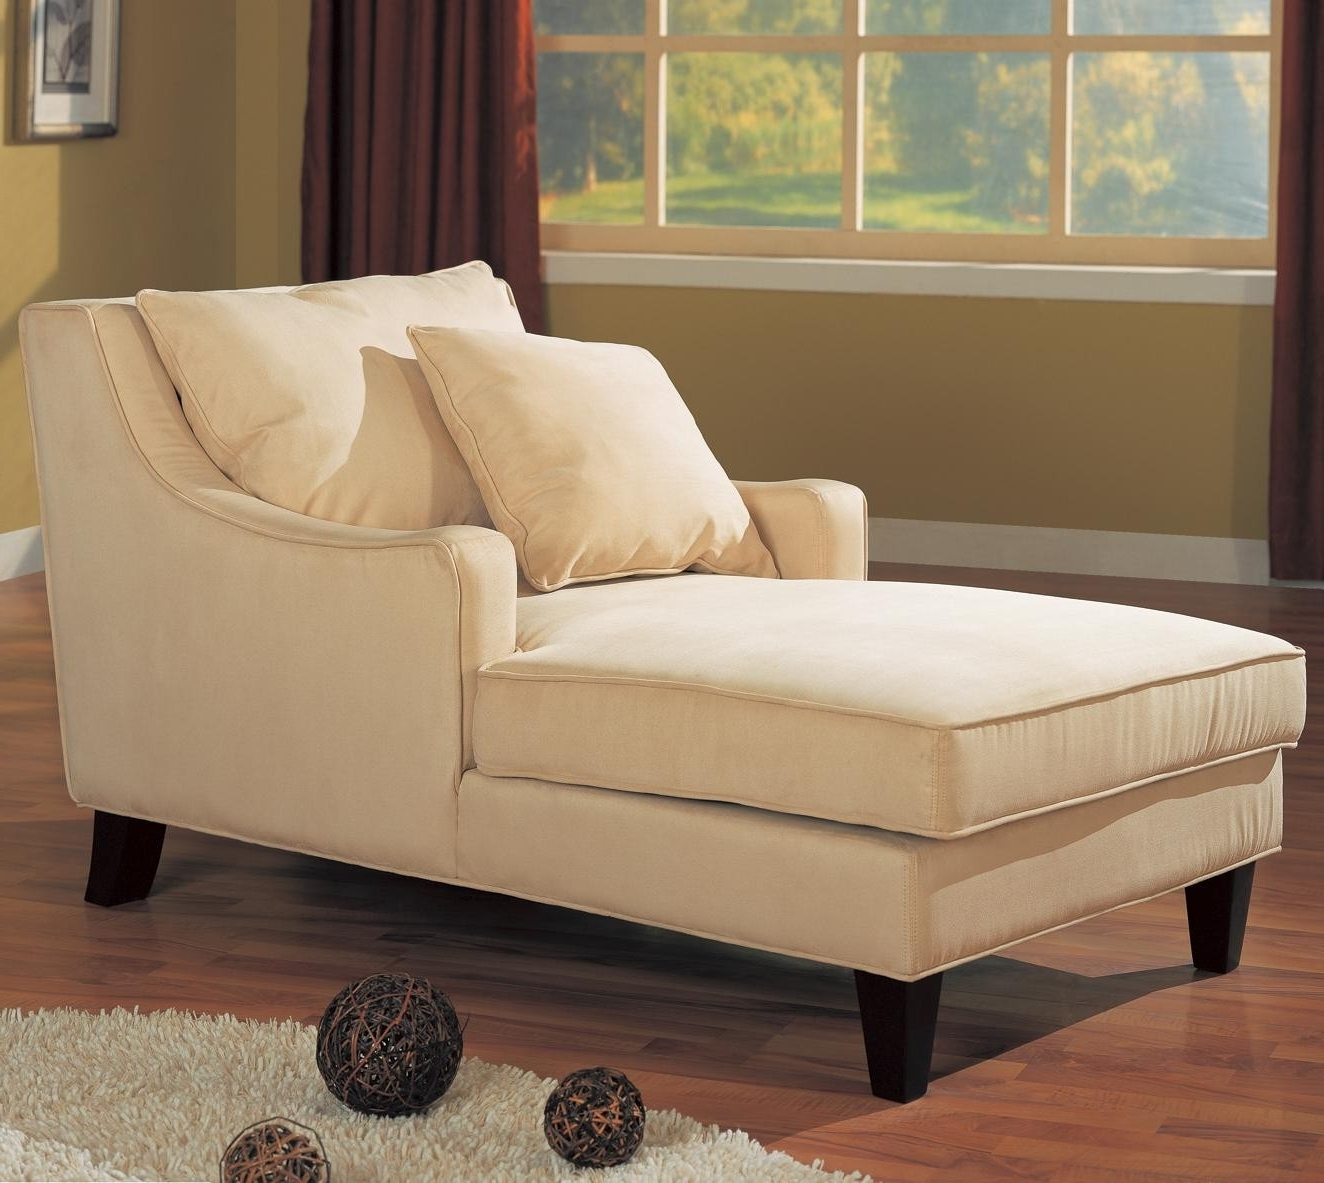 Bedroom Chaise Lounge Chairs Within Recent Accent Seating Microfiber Chaise Lounge Lowest Price – Sofa (View 3 of 15)